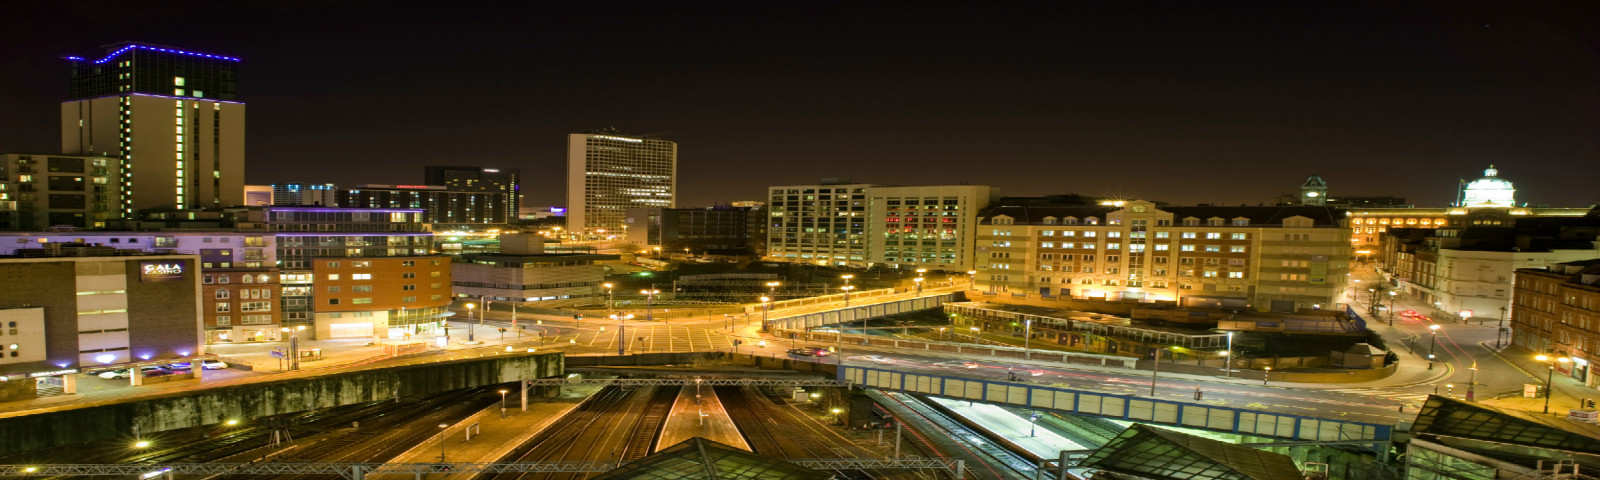 city-of-birmingham-skyline-final-01-e1453849039301